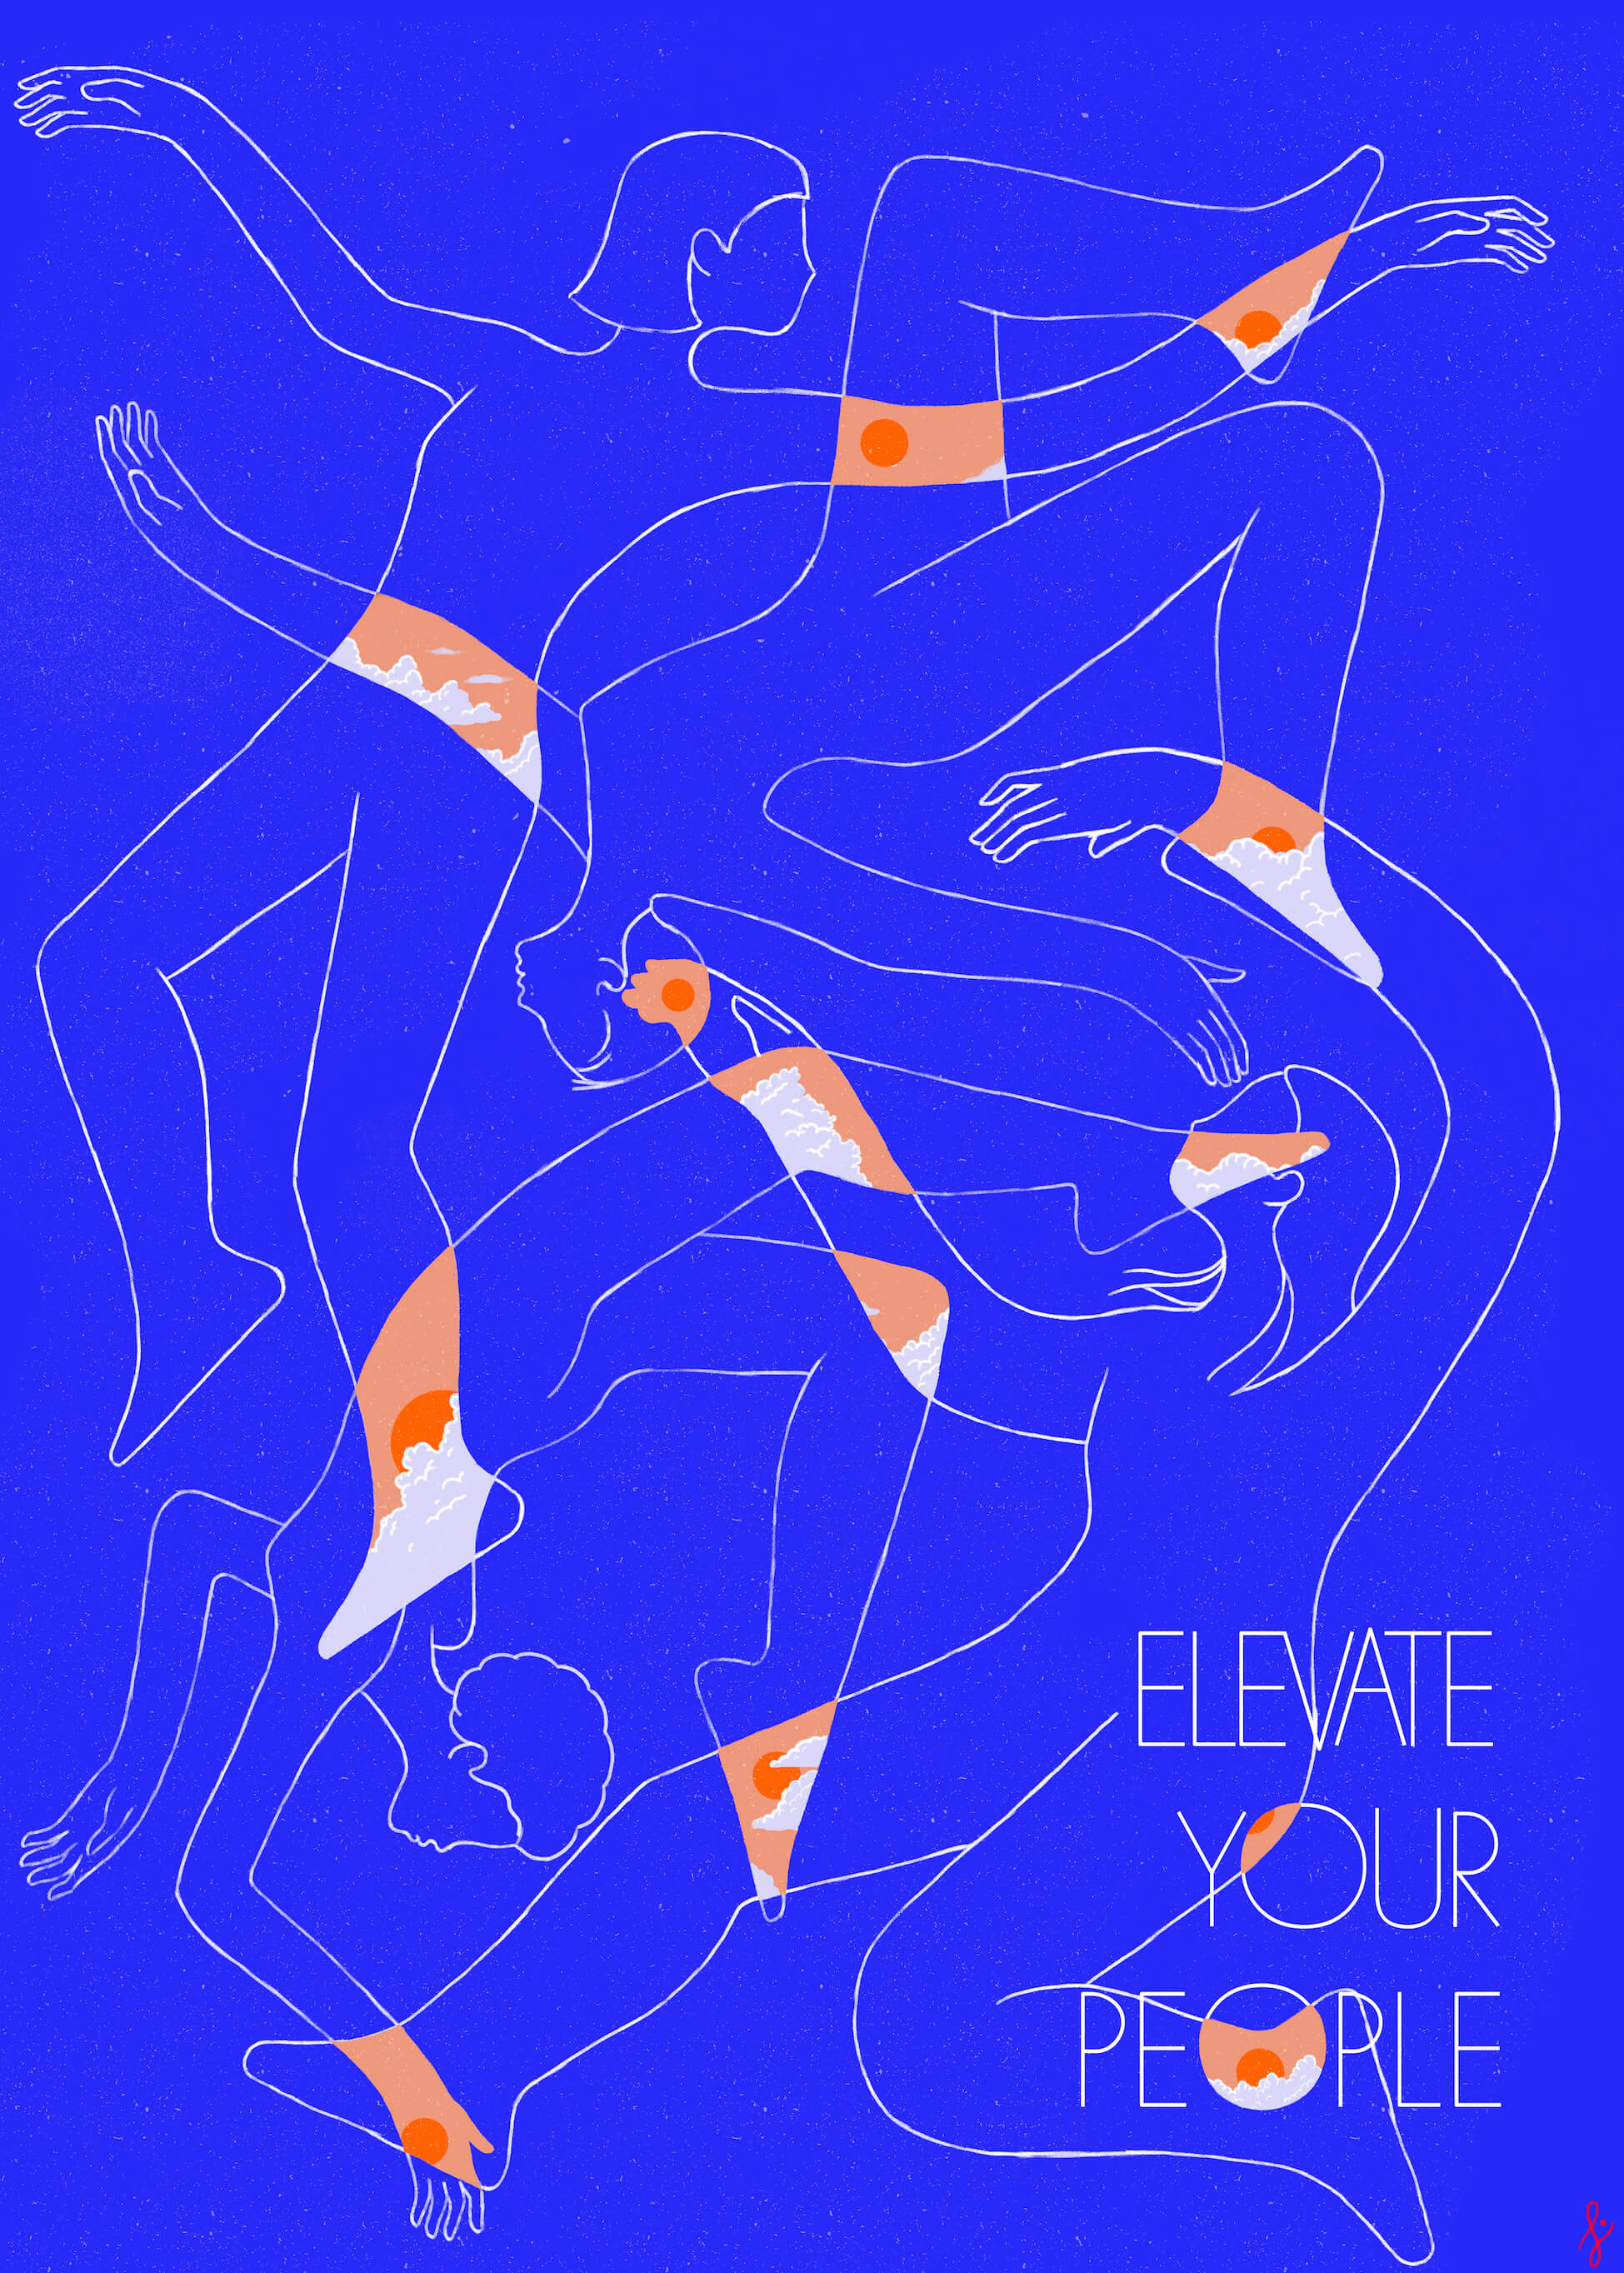 Elevate Your People 2/3 main image